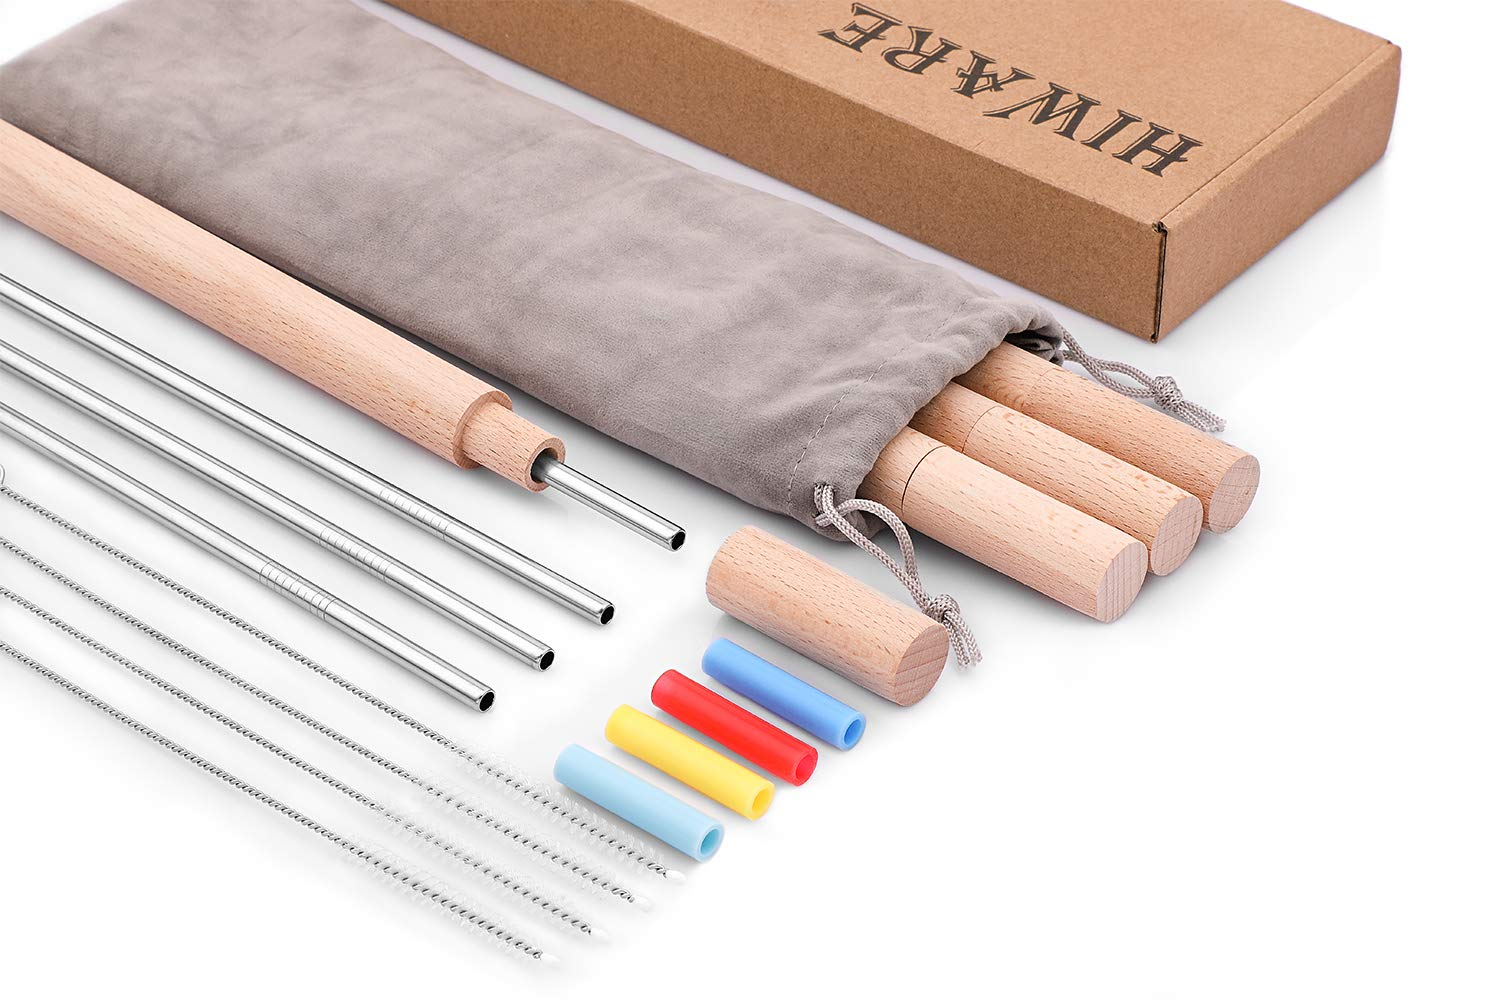 Hiware Reusable Stainless Steel Metal Straws with Case - Include Eco-Friendly Metal Drinking Straws with Silicone Straw Tips + Handcrafted Wooden Travel Cases + Cleaning Brushes + Storage Pouch